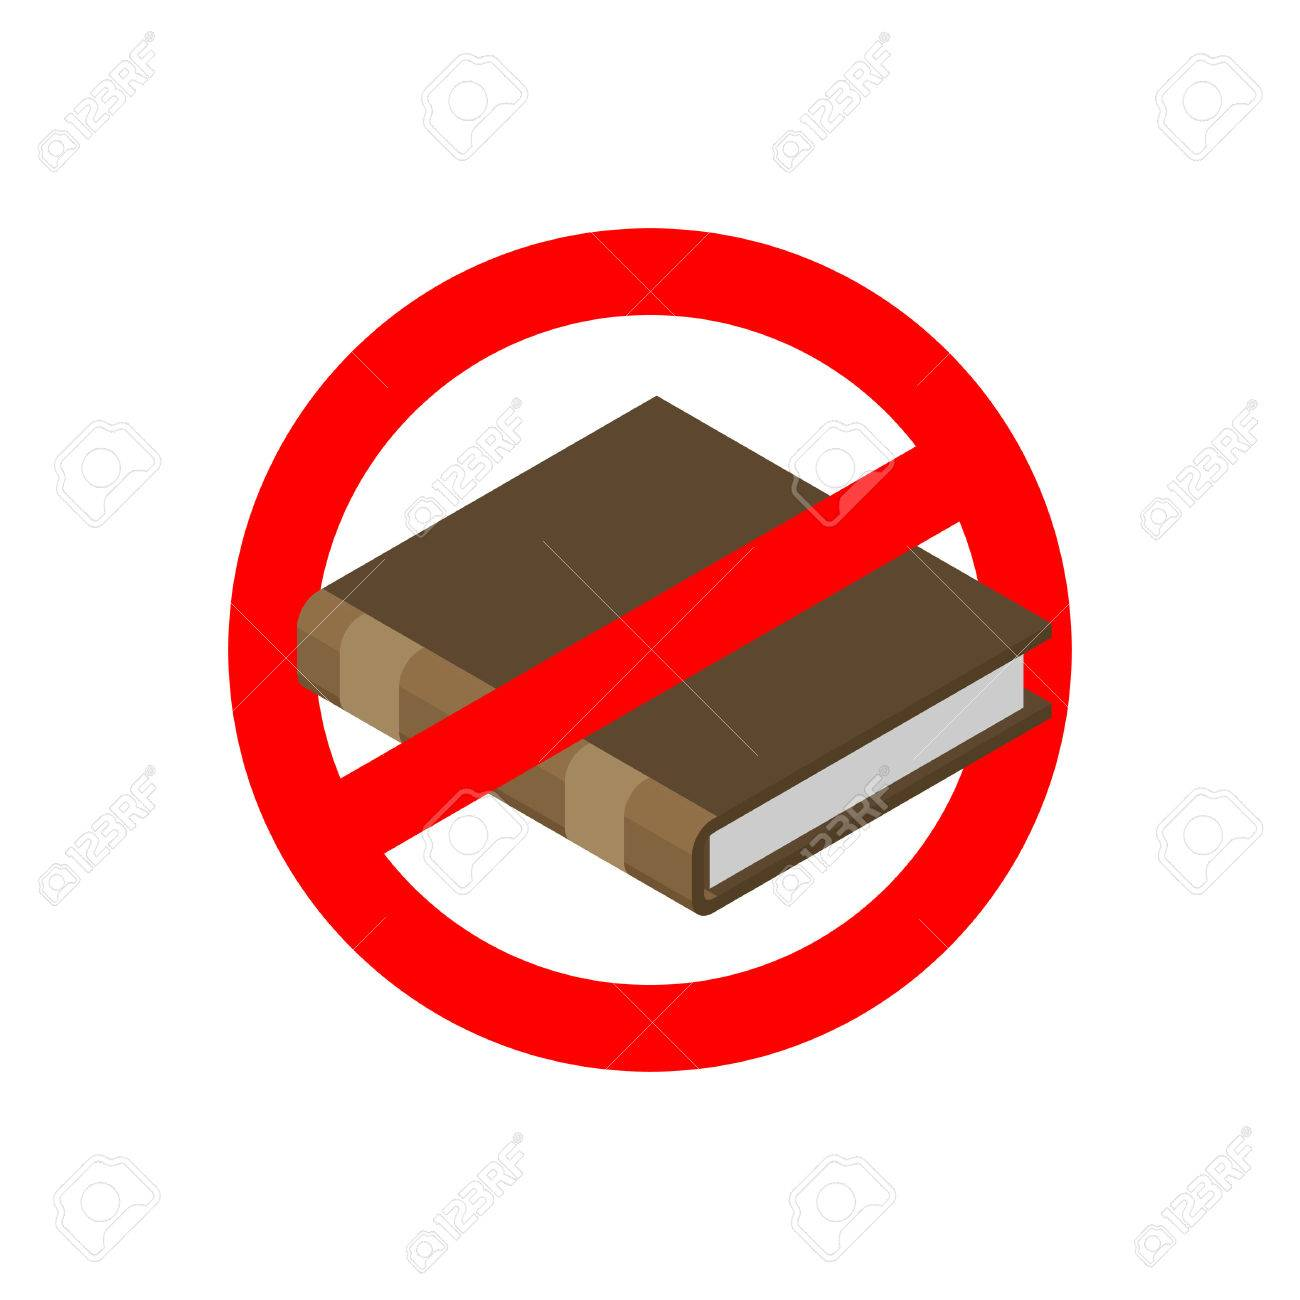 Forum on this topic: How to Read a Forbidden Book, how-to-read-a-forbidden-book/